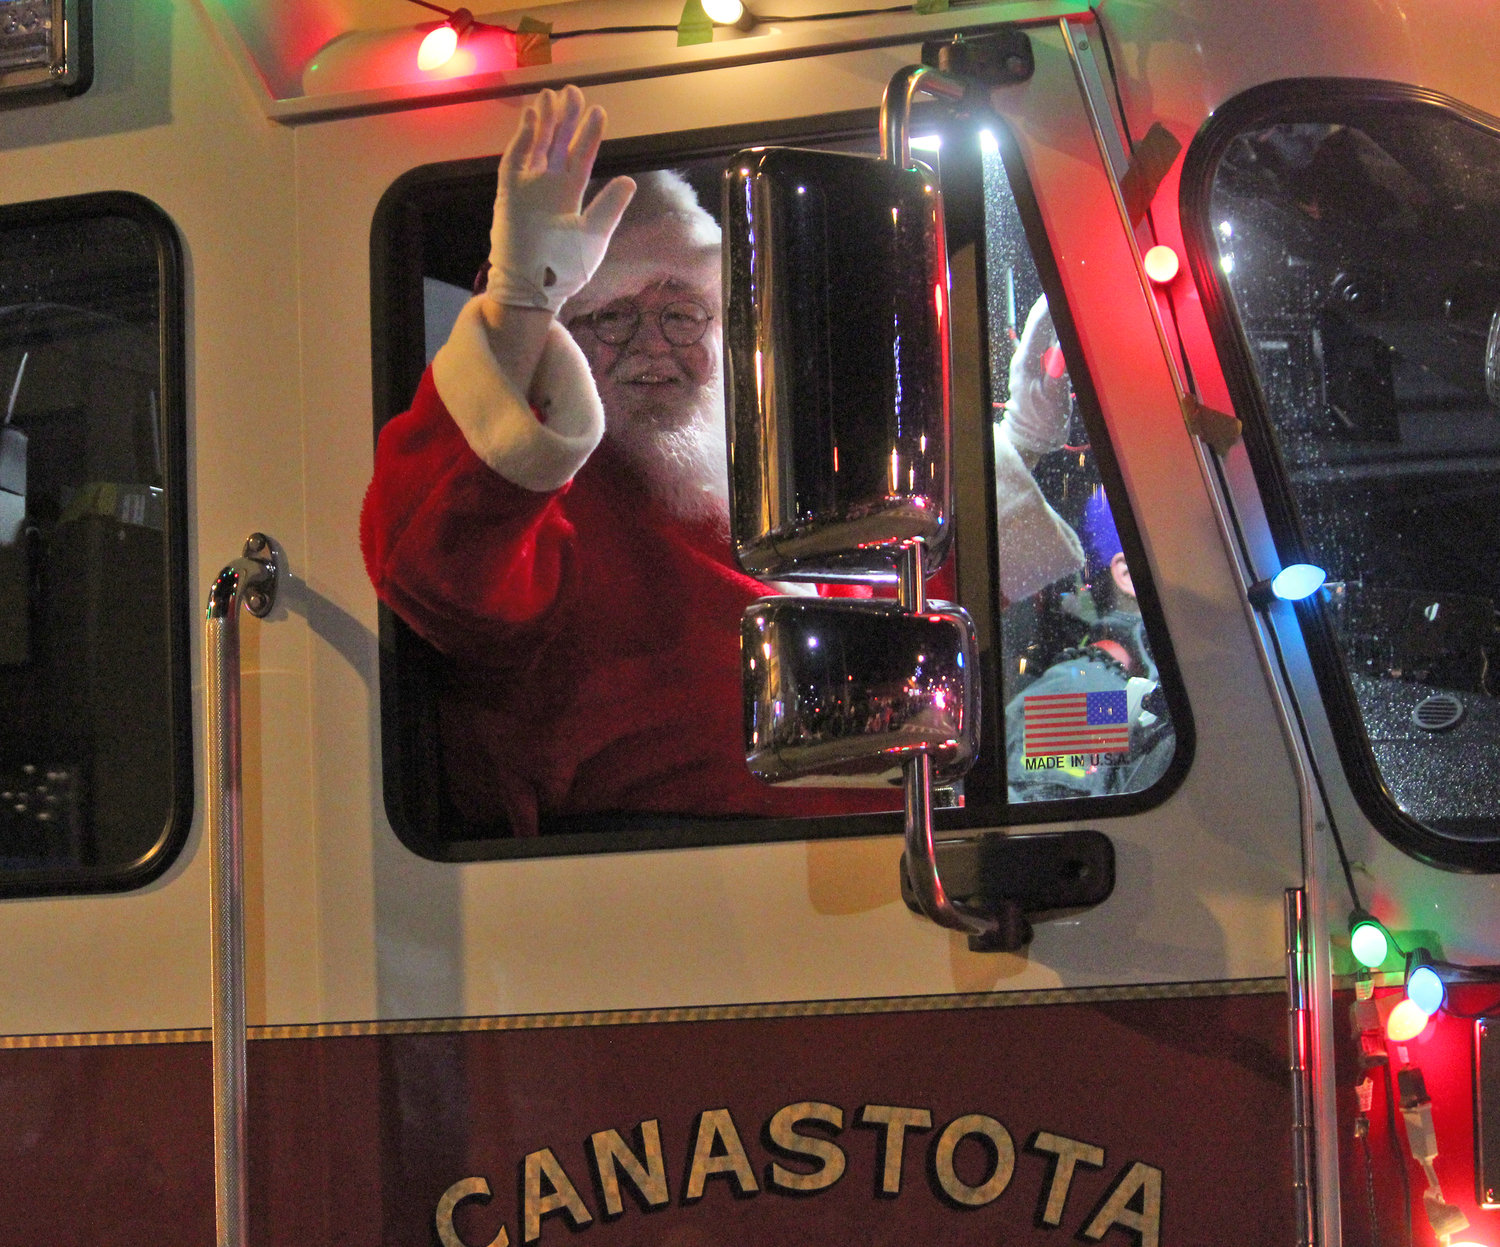 COMING TO TOWN — Santa Claus gets a ride from the Canastota Fire Department down South Peterboro Street for the second annual Canastota Parade of Lights on Saturday, Nov. 30.